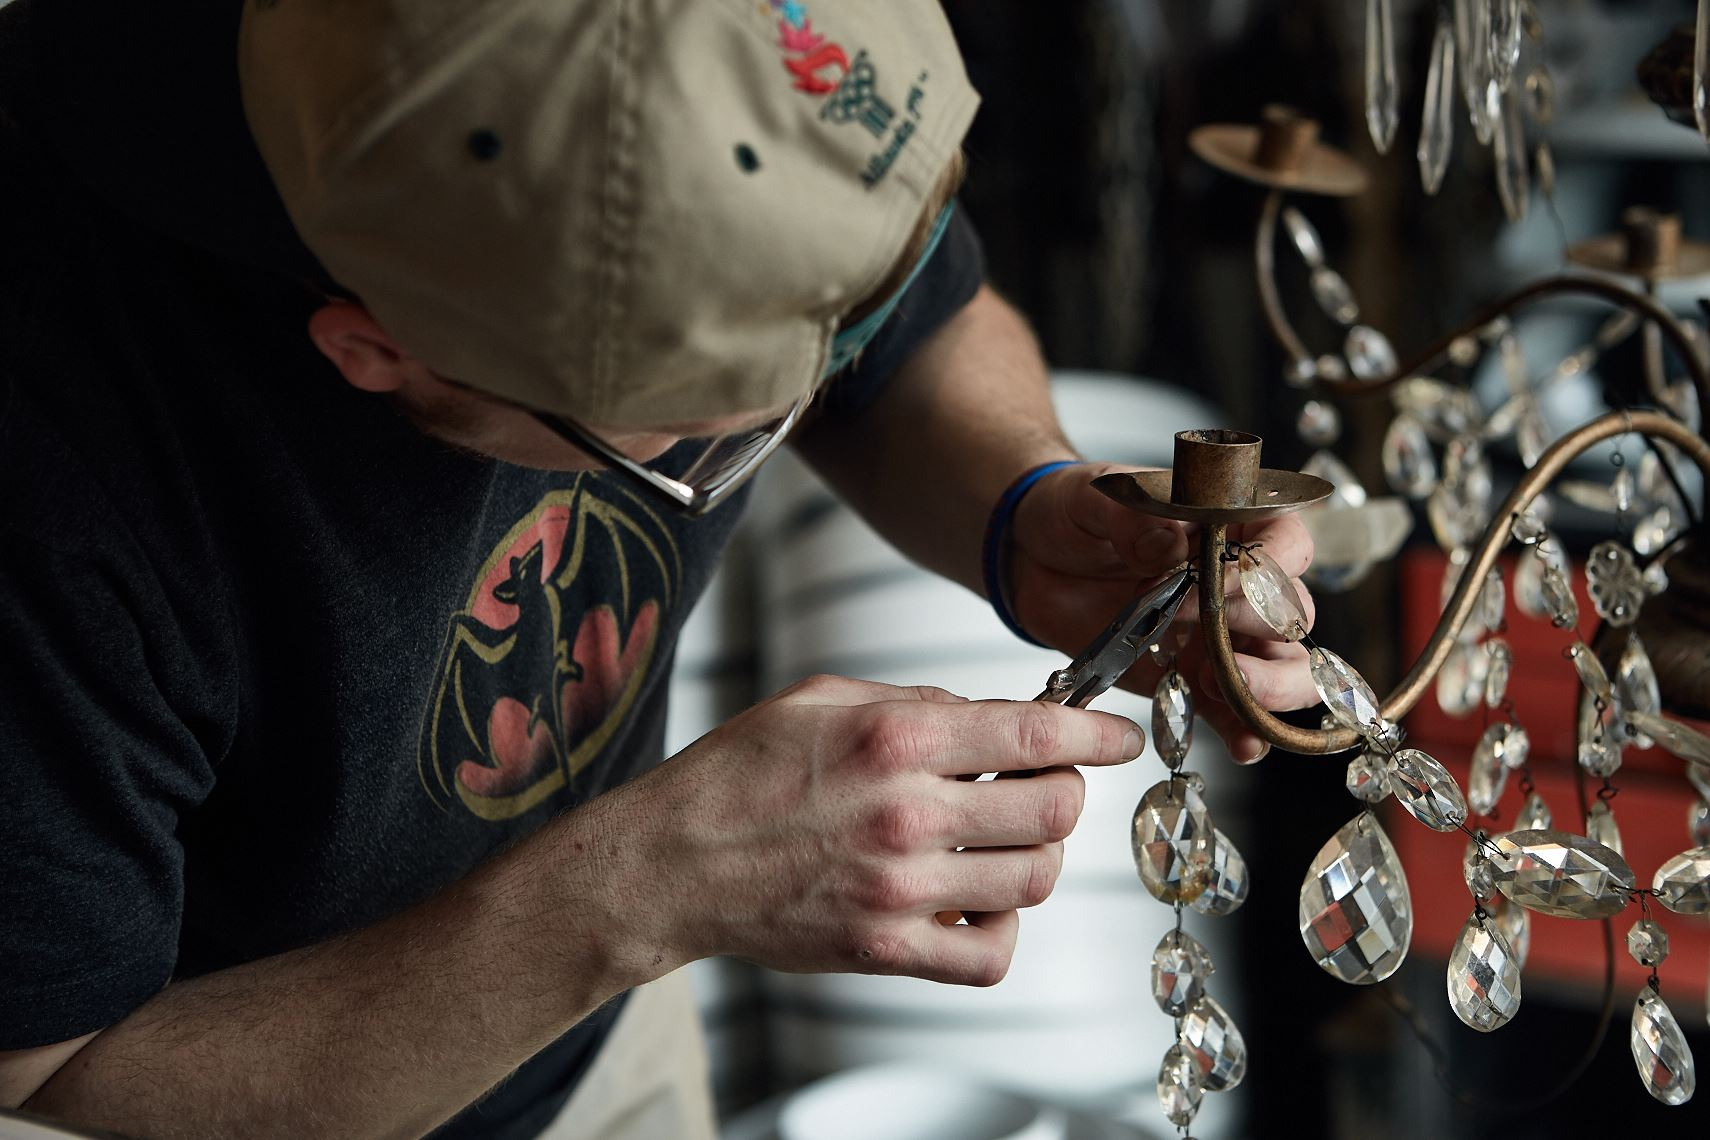 Craftsman repairs antique chandelier, Atlanta. Photographer Nick Burchell